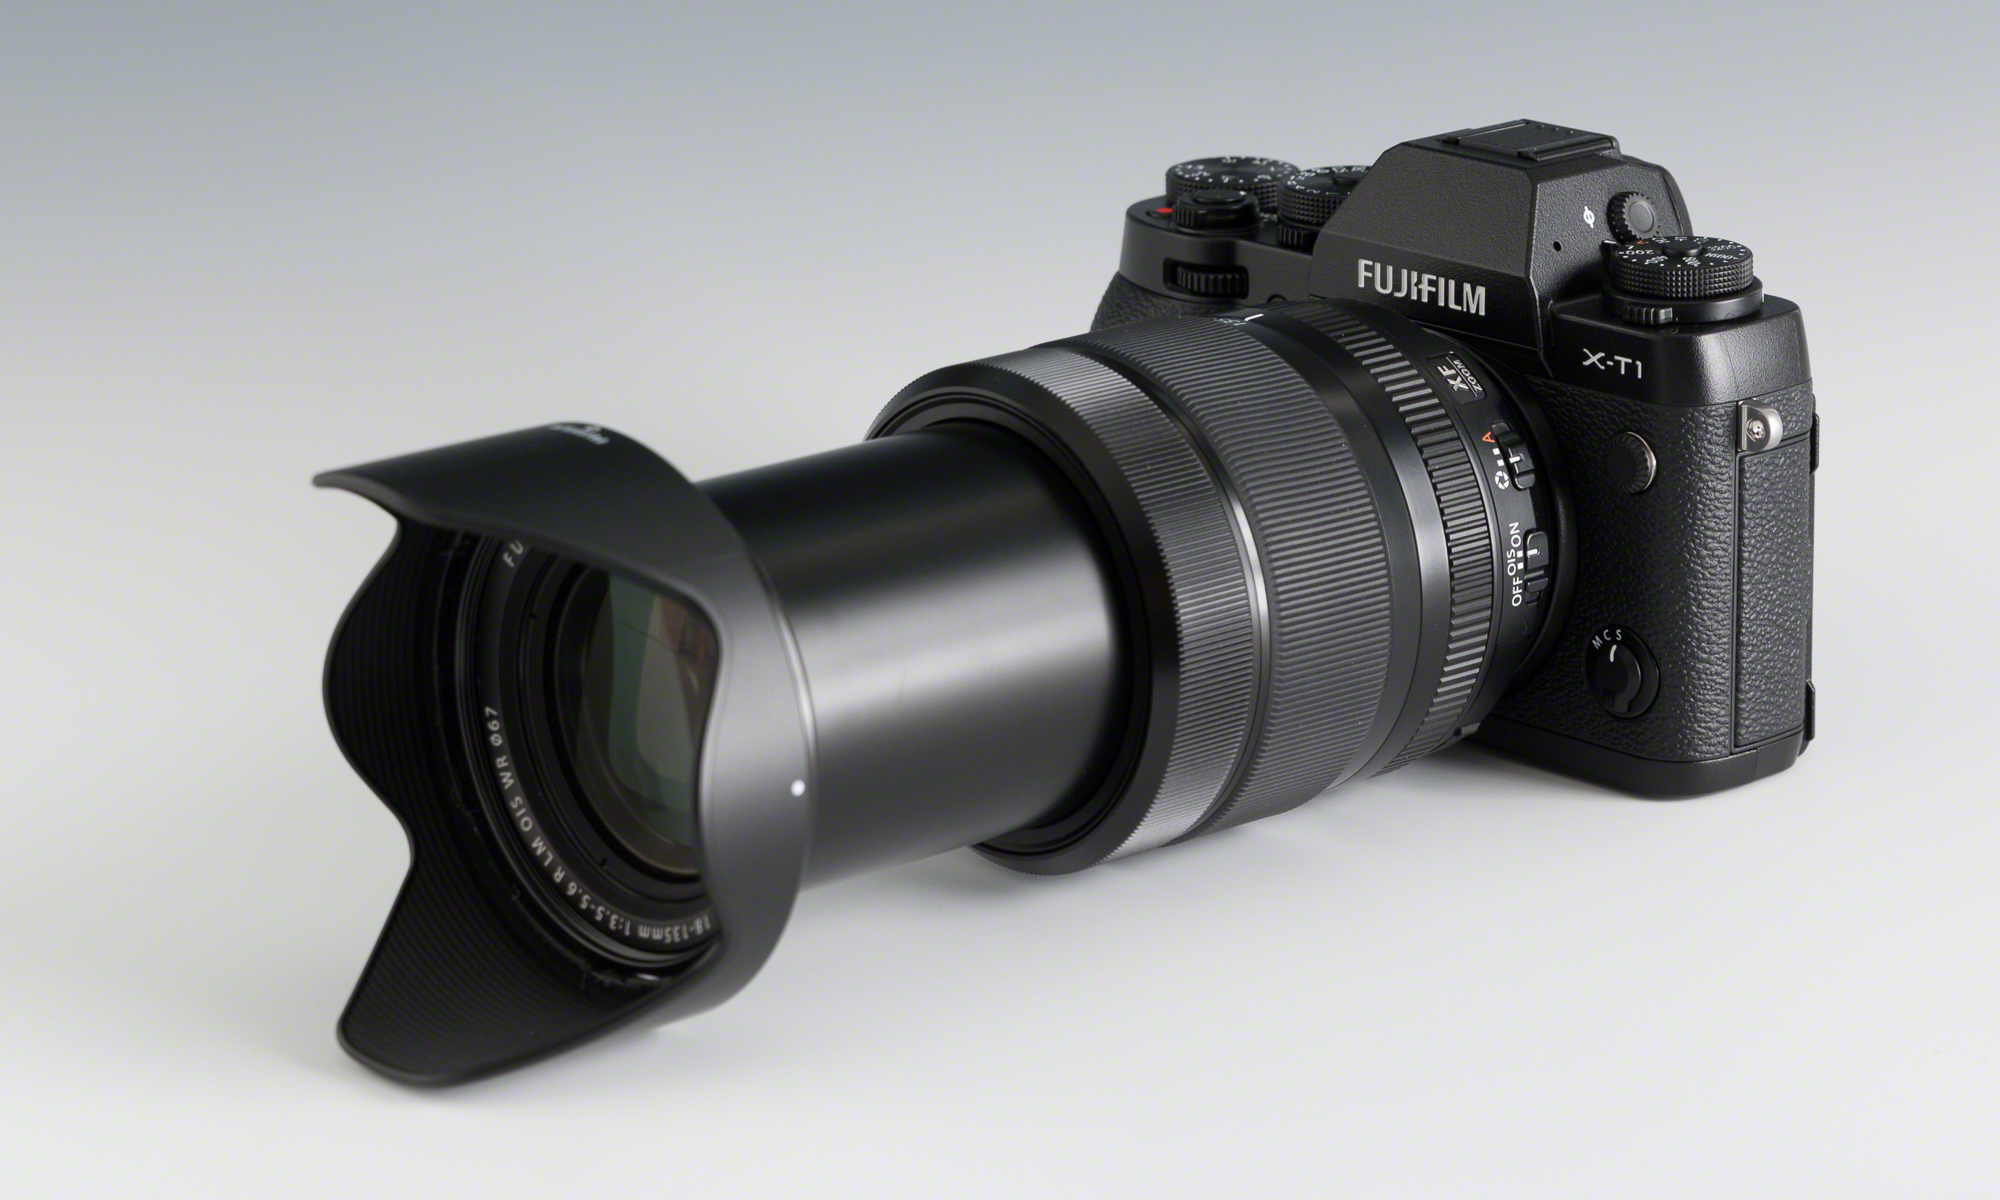 Hands-On Lens Review: The Fuji XF 18-135mm | Photofocus: https://photofocus.com/2014/09/14/hands-on-lens-review-the-fuji-xf...